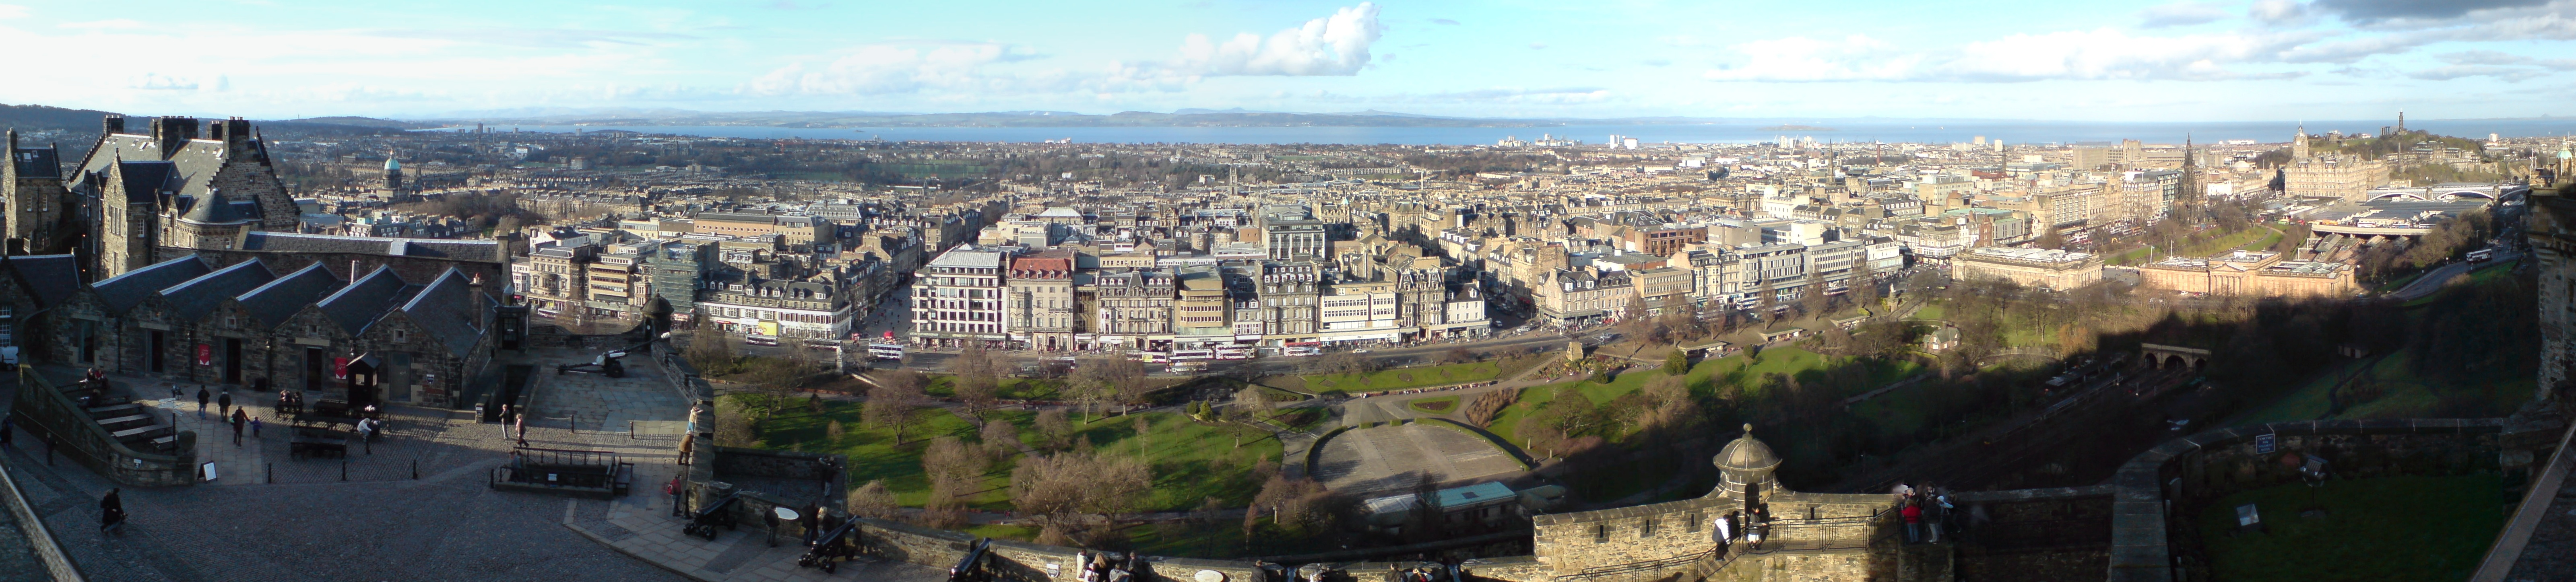 ... trip to edinburgh and the view this time is from edinburgh castle